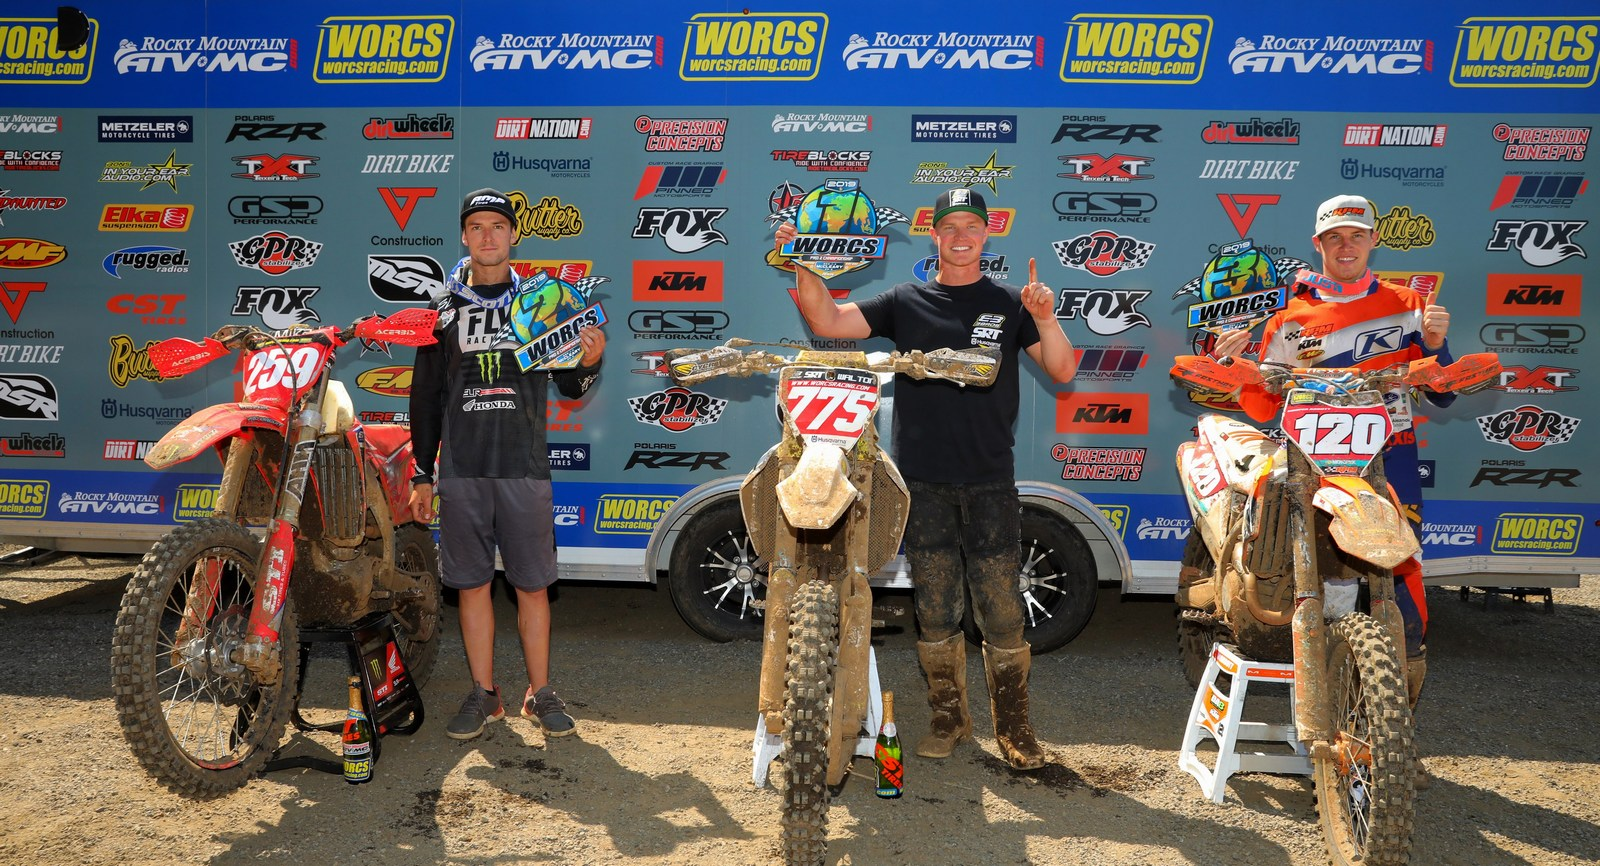 2019-08-podium-pro2-bike-worcs-racing